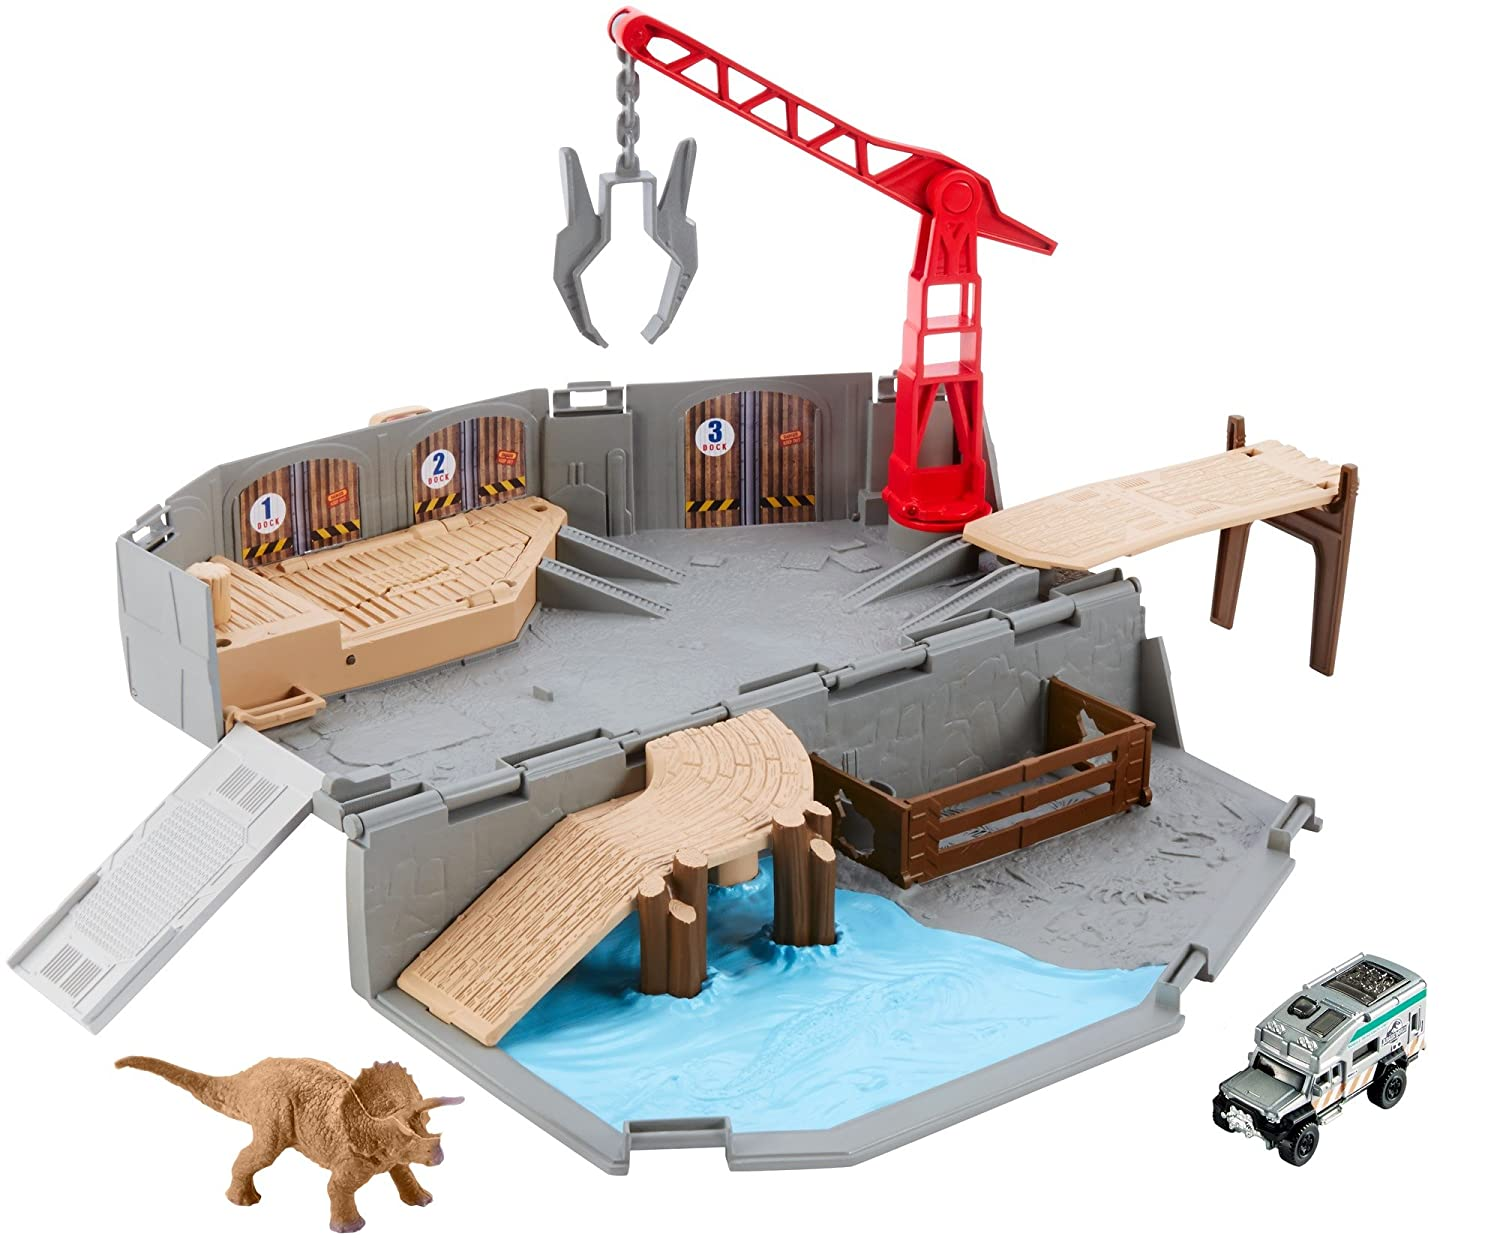 A Matchbox Jurassic World Portable Harbor Rescue Playset